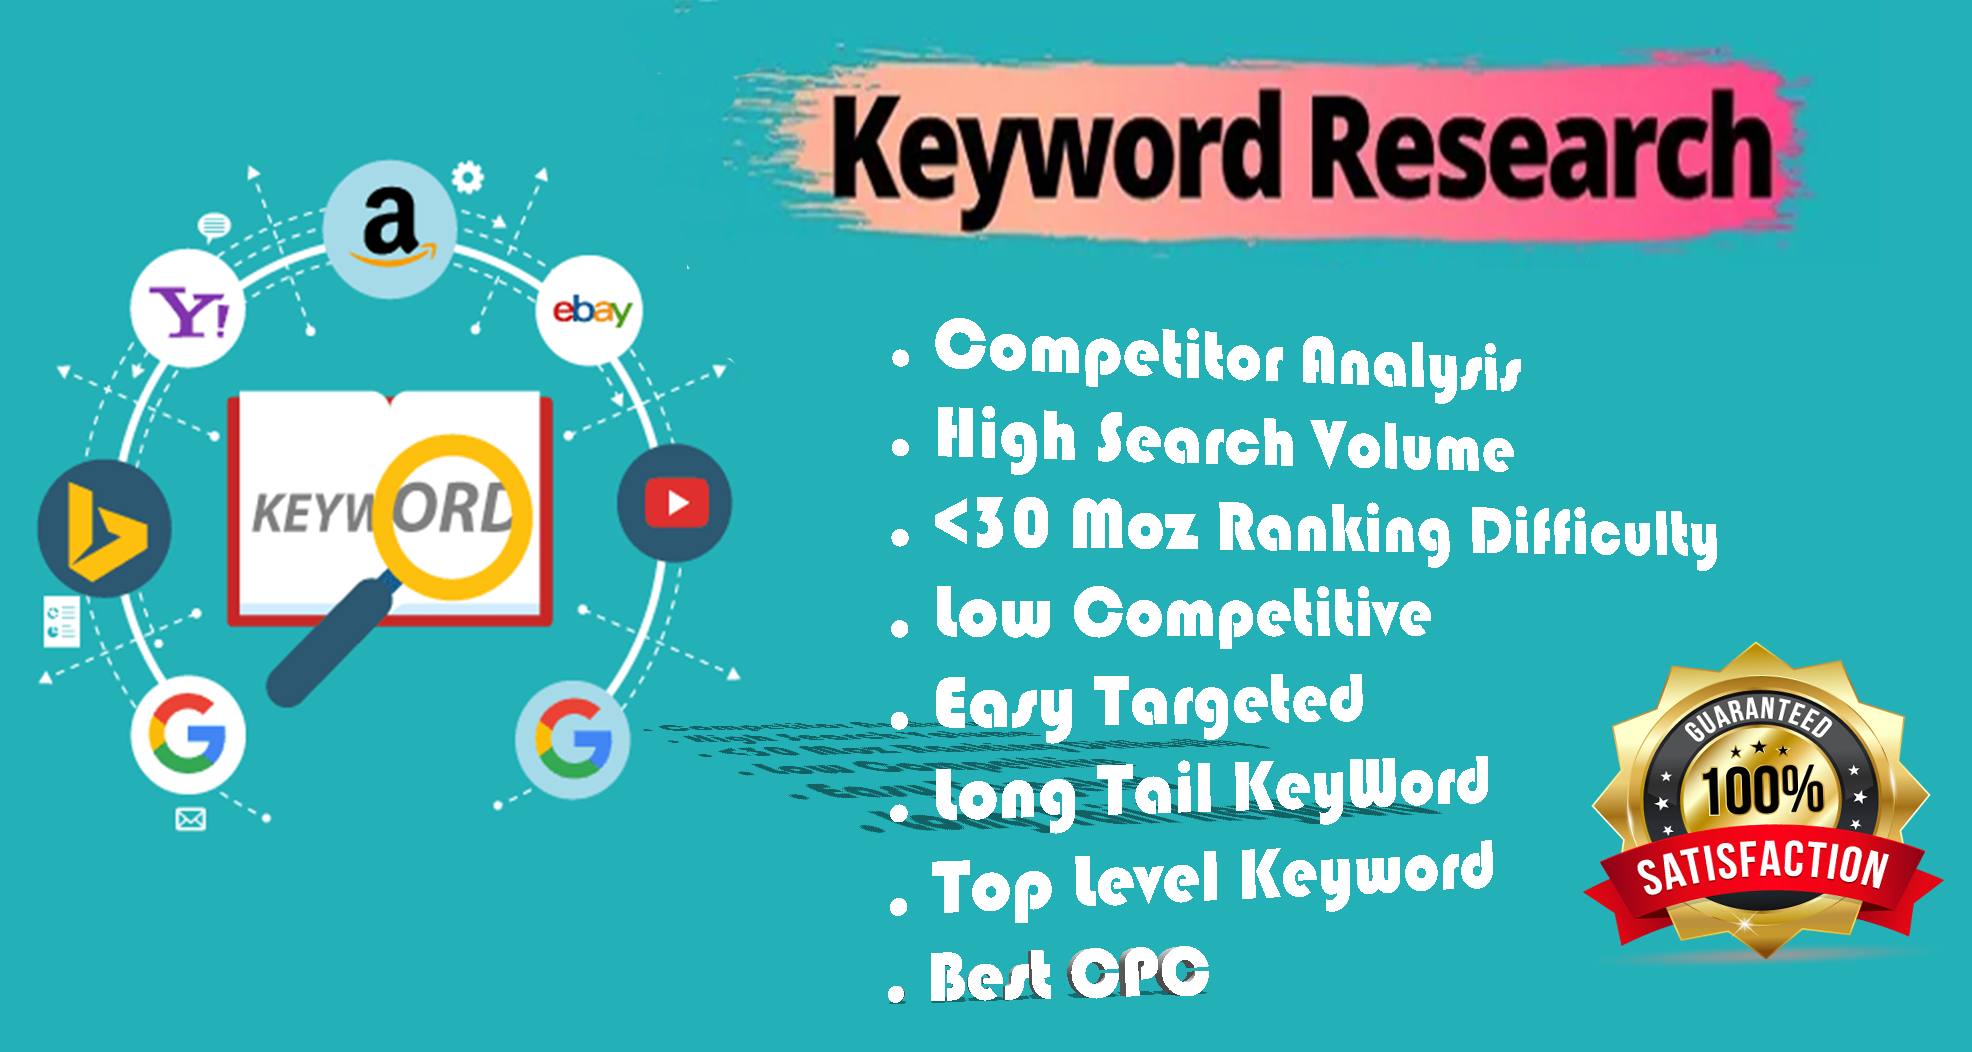 I will find the best keyword research for your targeted niche or business